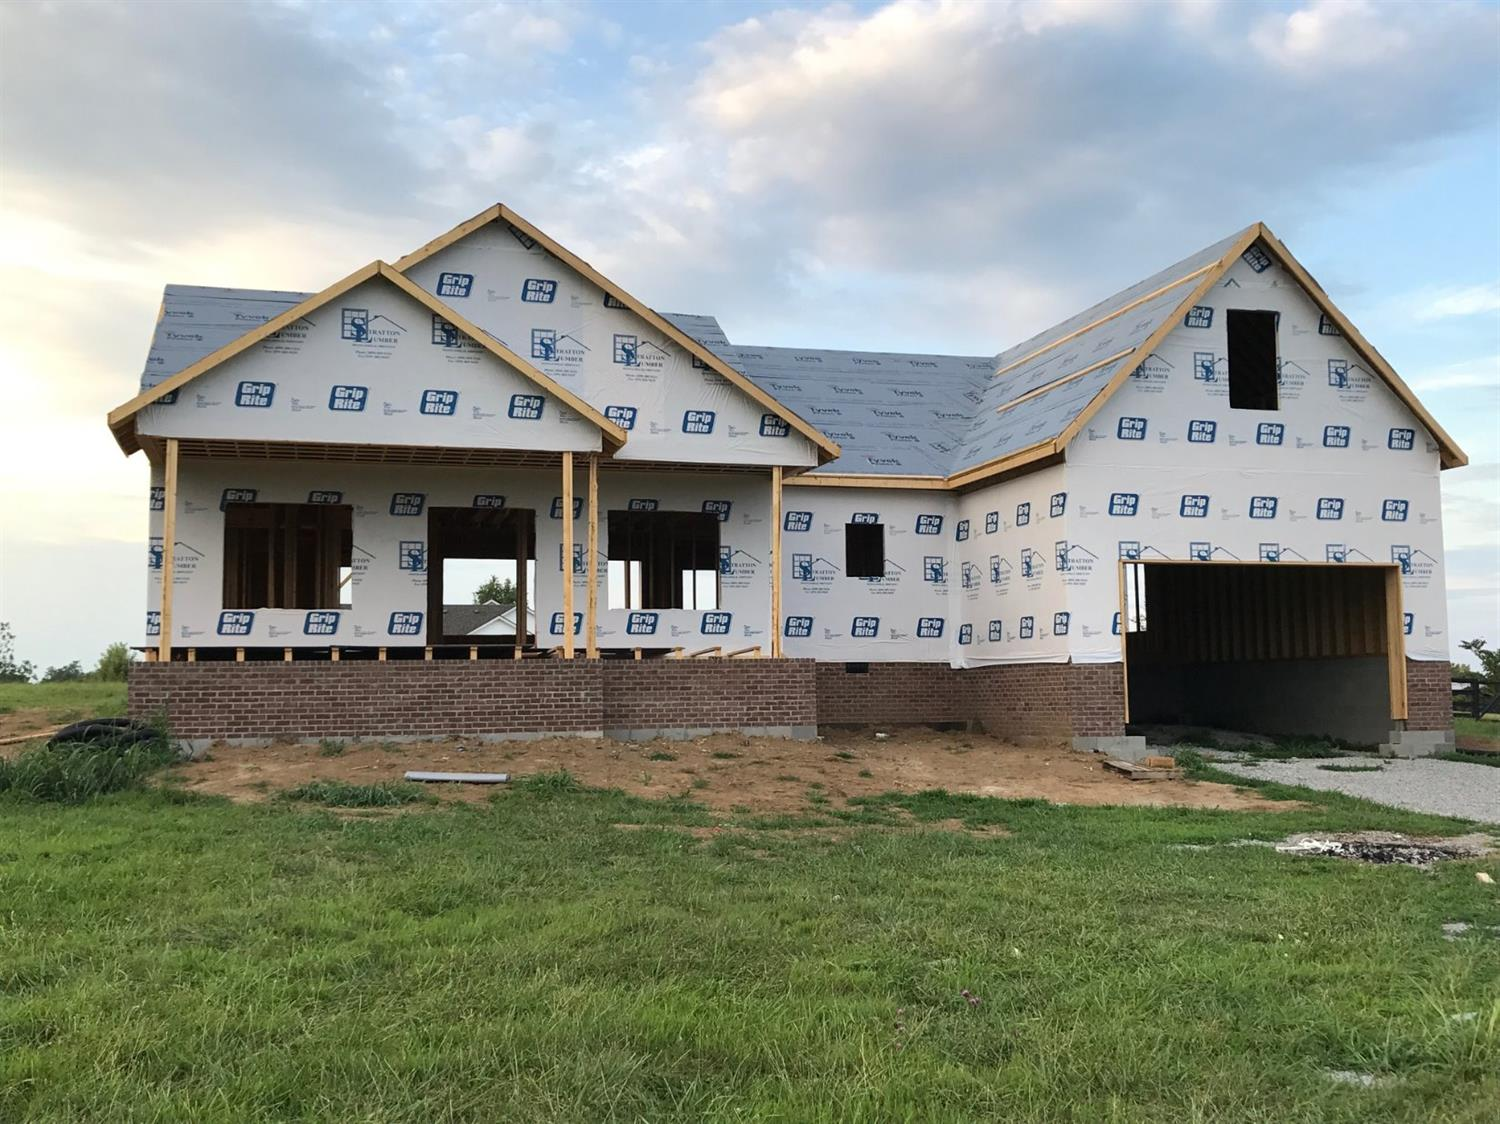 Custom%20built%20home%20by%20Johnson%20Builders%20on%20a%201+%20acre%20lot,%20featuring%203%20bedrooms,%202.5%20baths,%20additional%20unfinished%20bonus%20room,%20hardwood%20floors,%20granite,%20tile%20backsplash,%20master%20bedroom%20with%20treyed%20ceiling%20&%20master%20bath%20with%20tile%20shower%20&%20jacuzzi%20tub.%20Covered%20porch%20entry%20and%20covered%20rear%20patio.